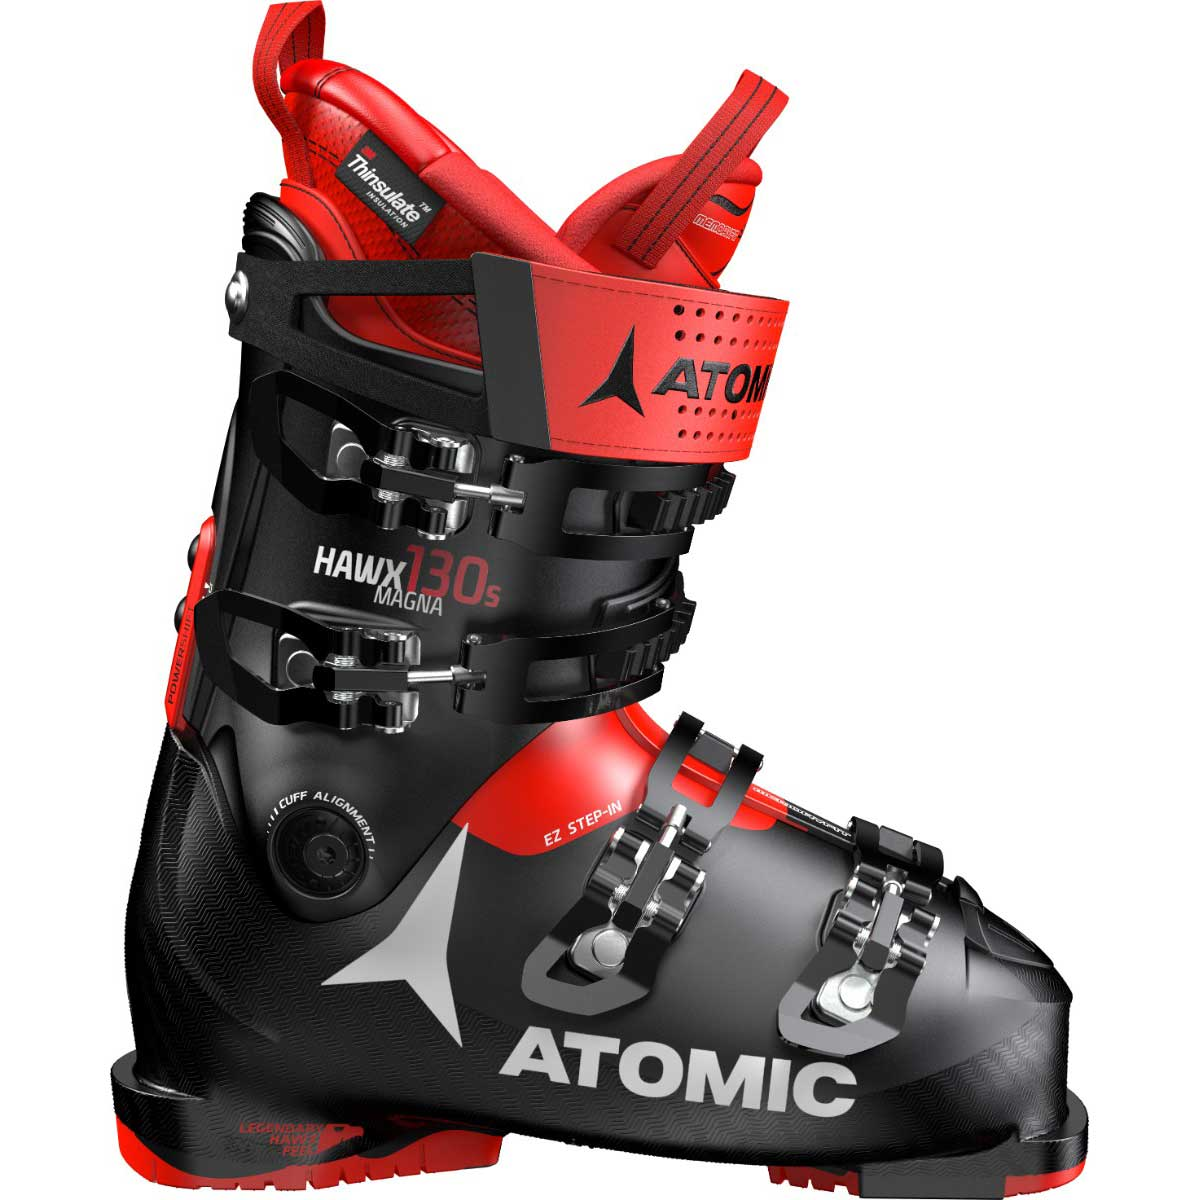 Atomic HAWX Magna 130 S ski boot in black and red